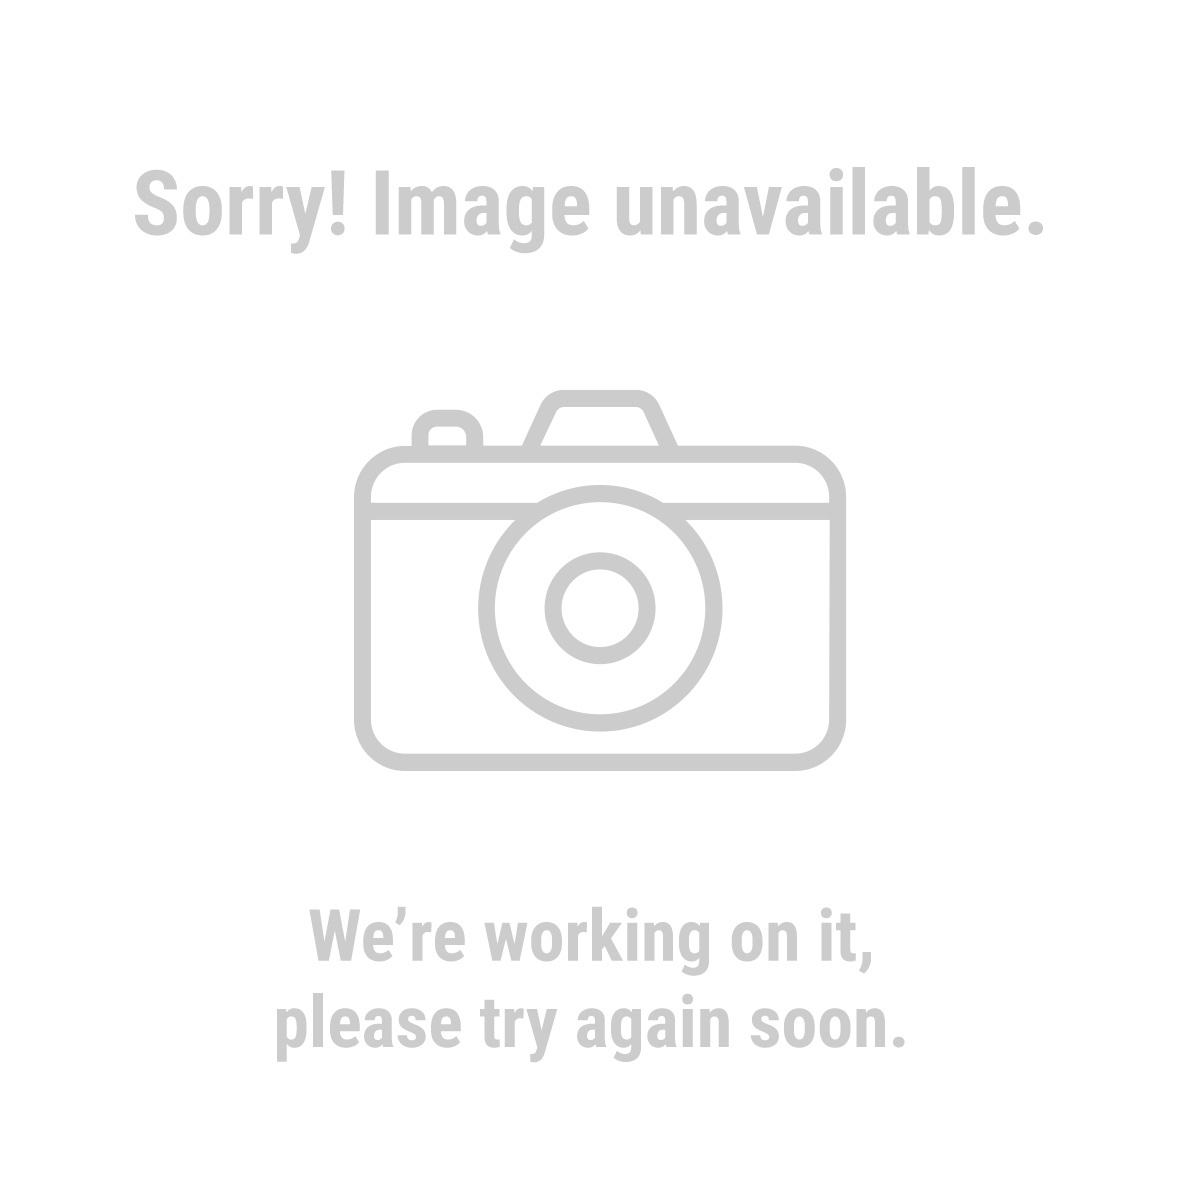 Pittsburgh 91684 3 Piece Curved Jaw Locking Pliers Set